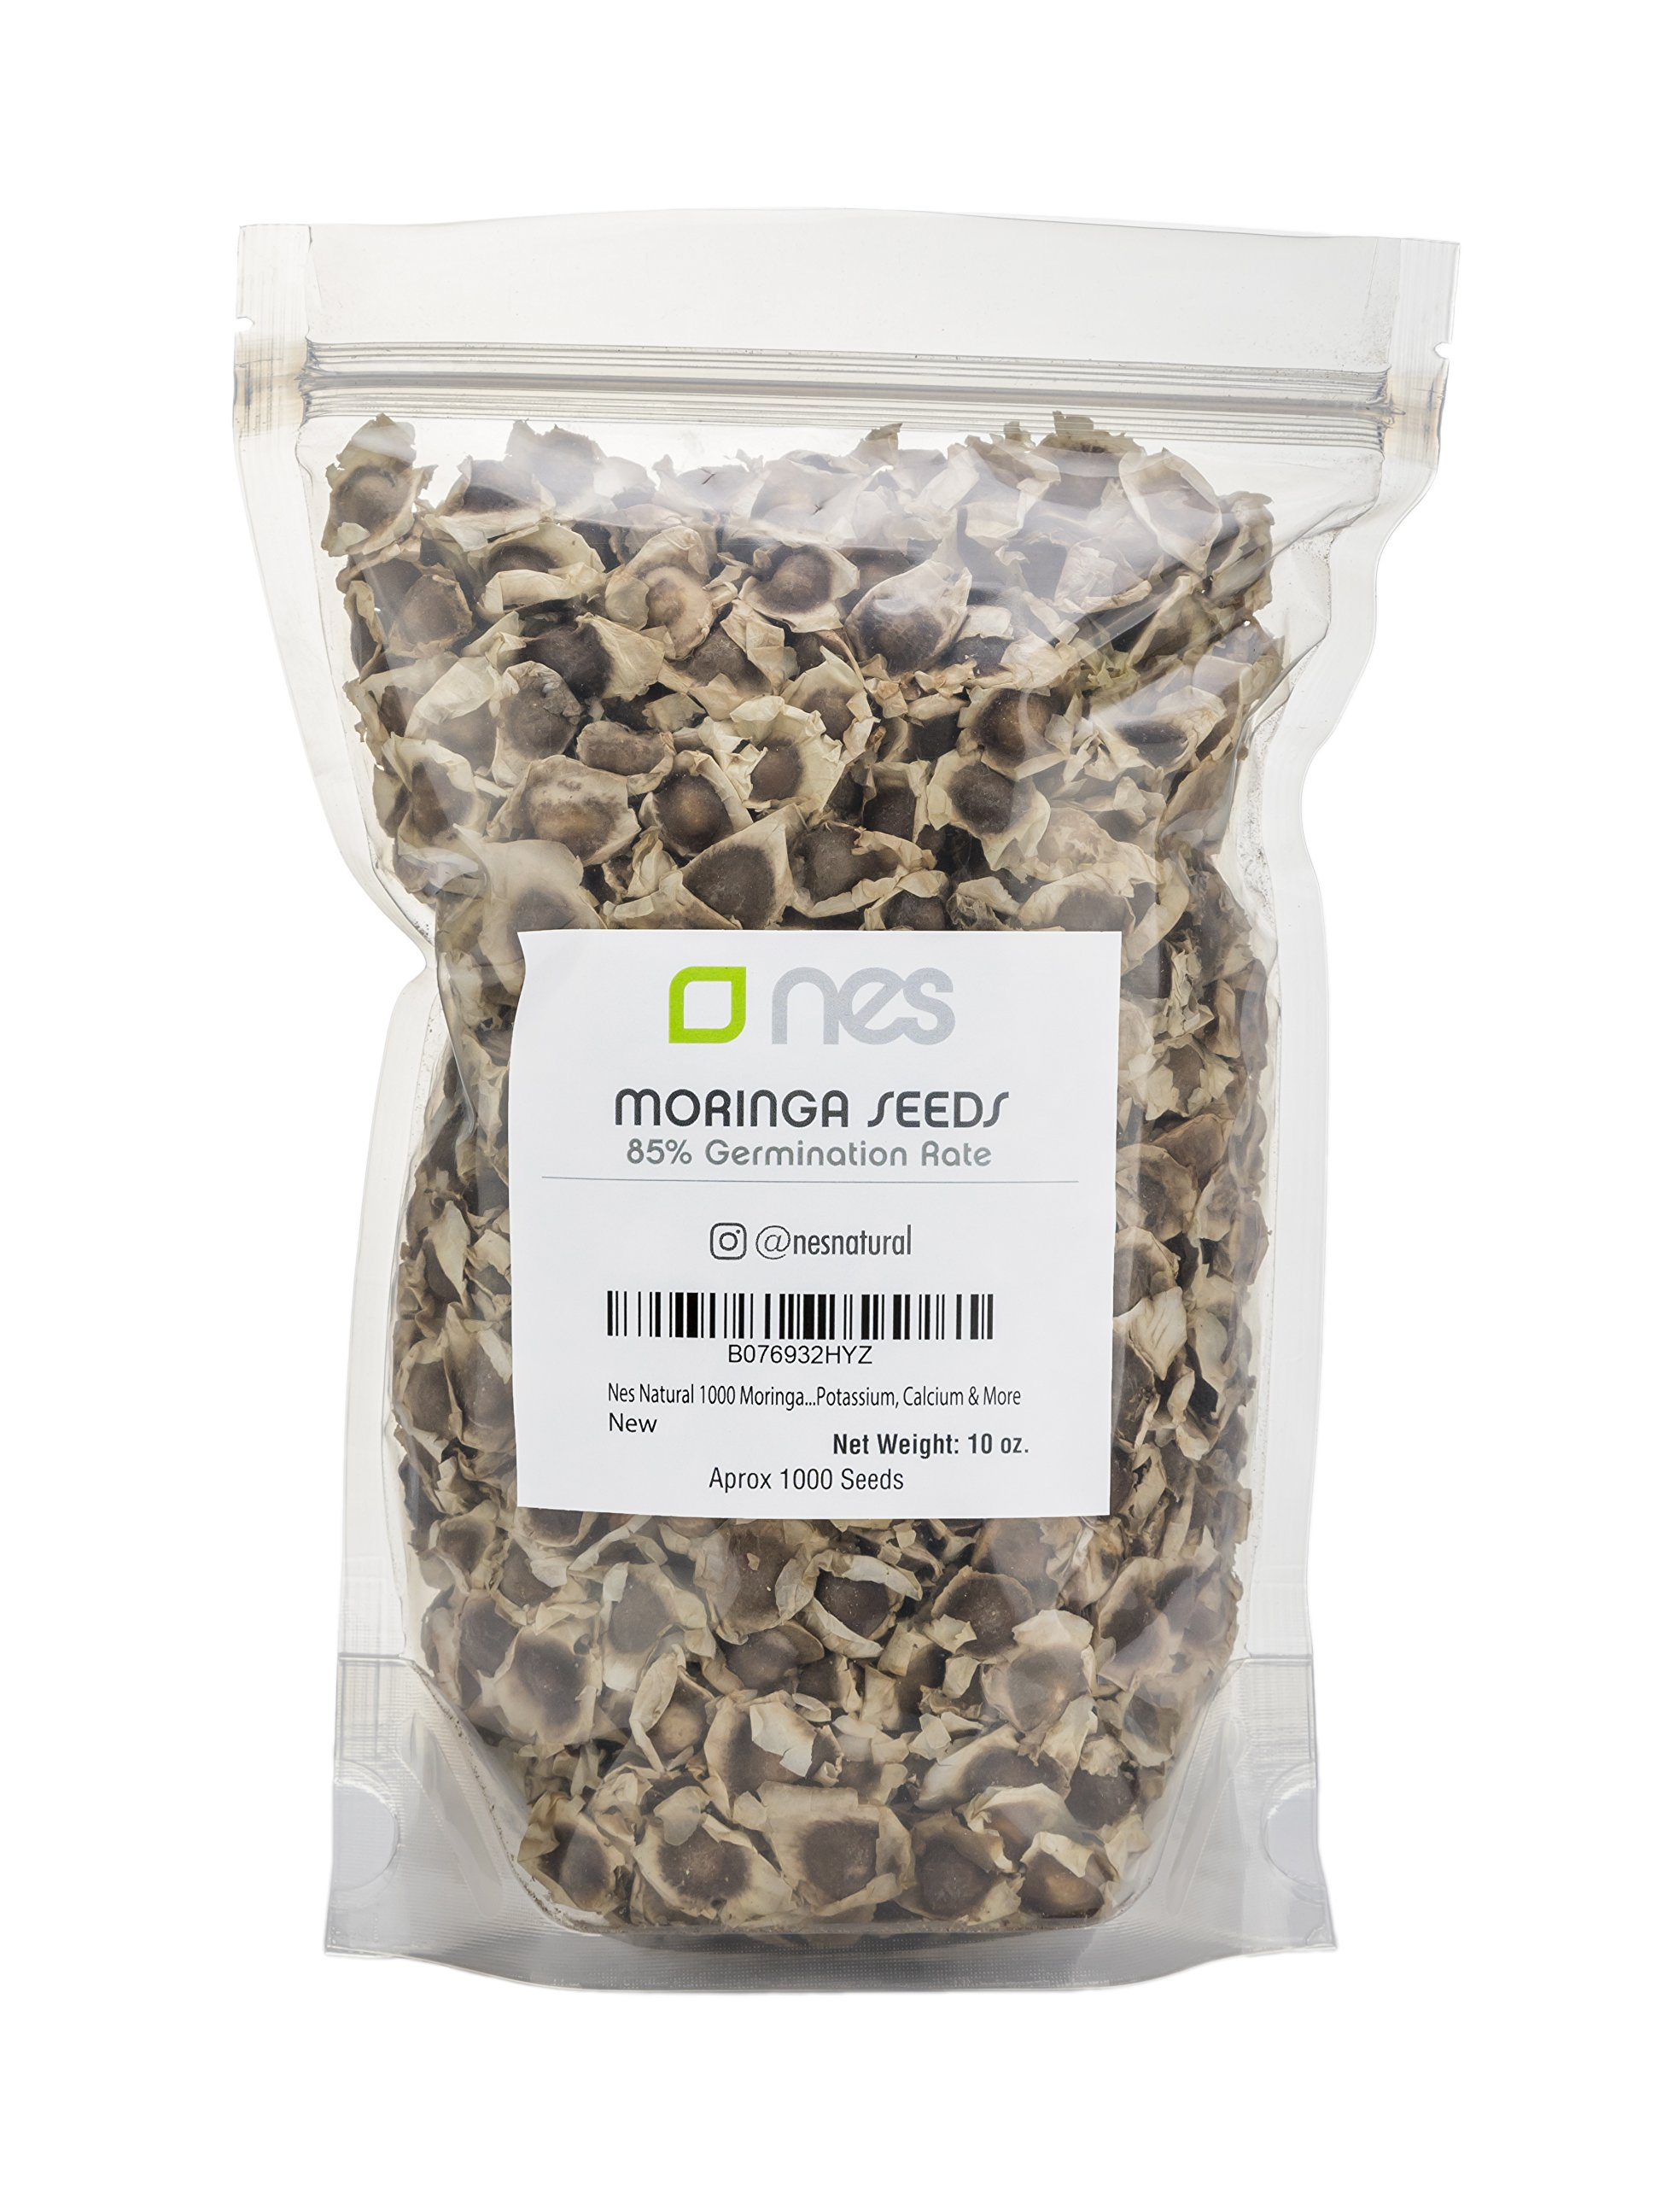 Nes Natural 1000 Moringa Oleifera Dried Seeds Pack | Nutritional, Antioxidant & Anti Inflammatory Drumstick Tree Edible Seeds | Rich In Vitamins, Minerals, Protein, Potassium, Calcium & More by NES Natural